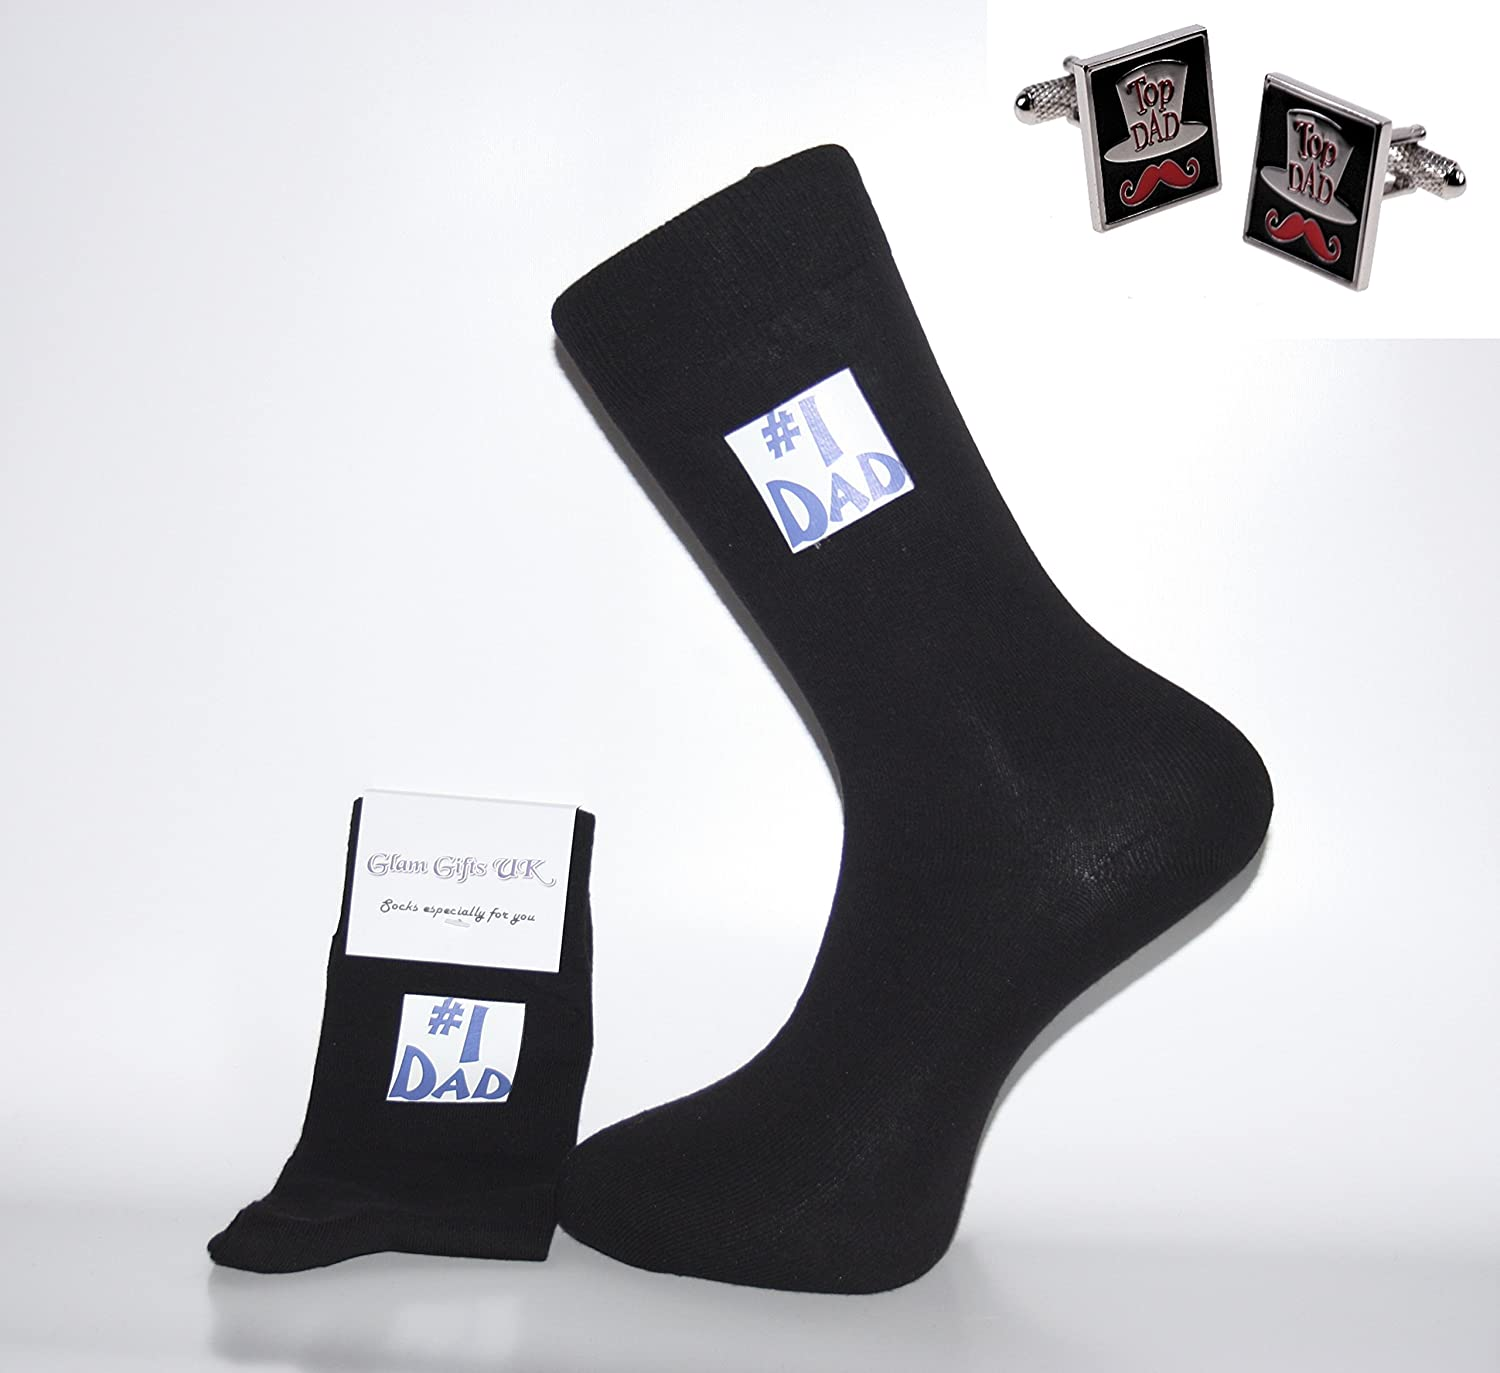 Glam Novelty Socks - Sock & Cufflink Sets Calcetines y Estos Gemelos – Negro Calcetines con no 1 Dad Calcetines & Top Dad Gemelos. Un Gran Regalo para Navidad, cumpleaños, día del Padre, Regal